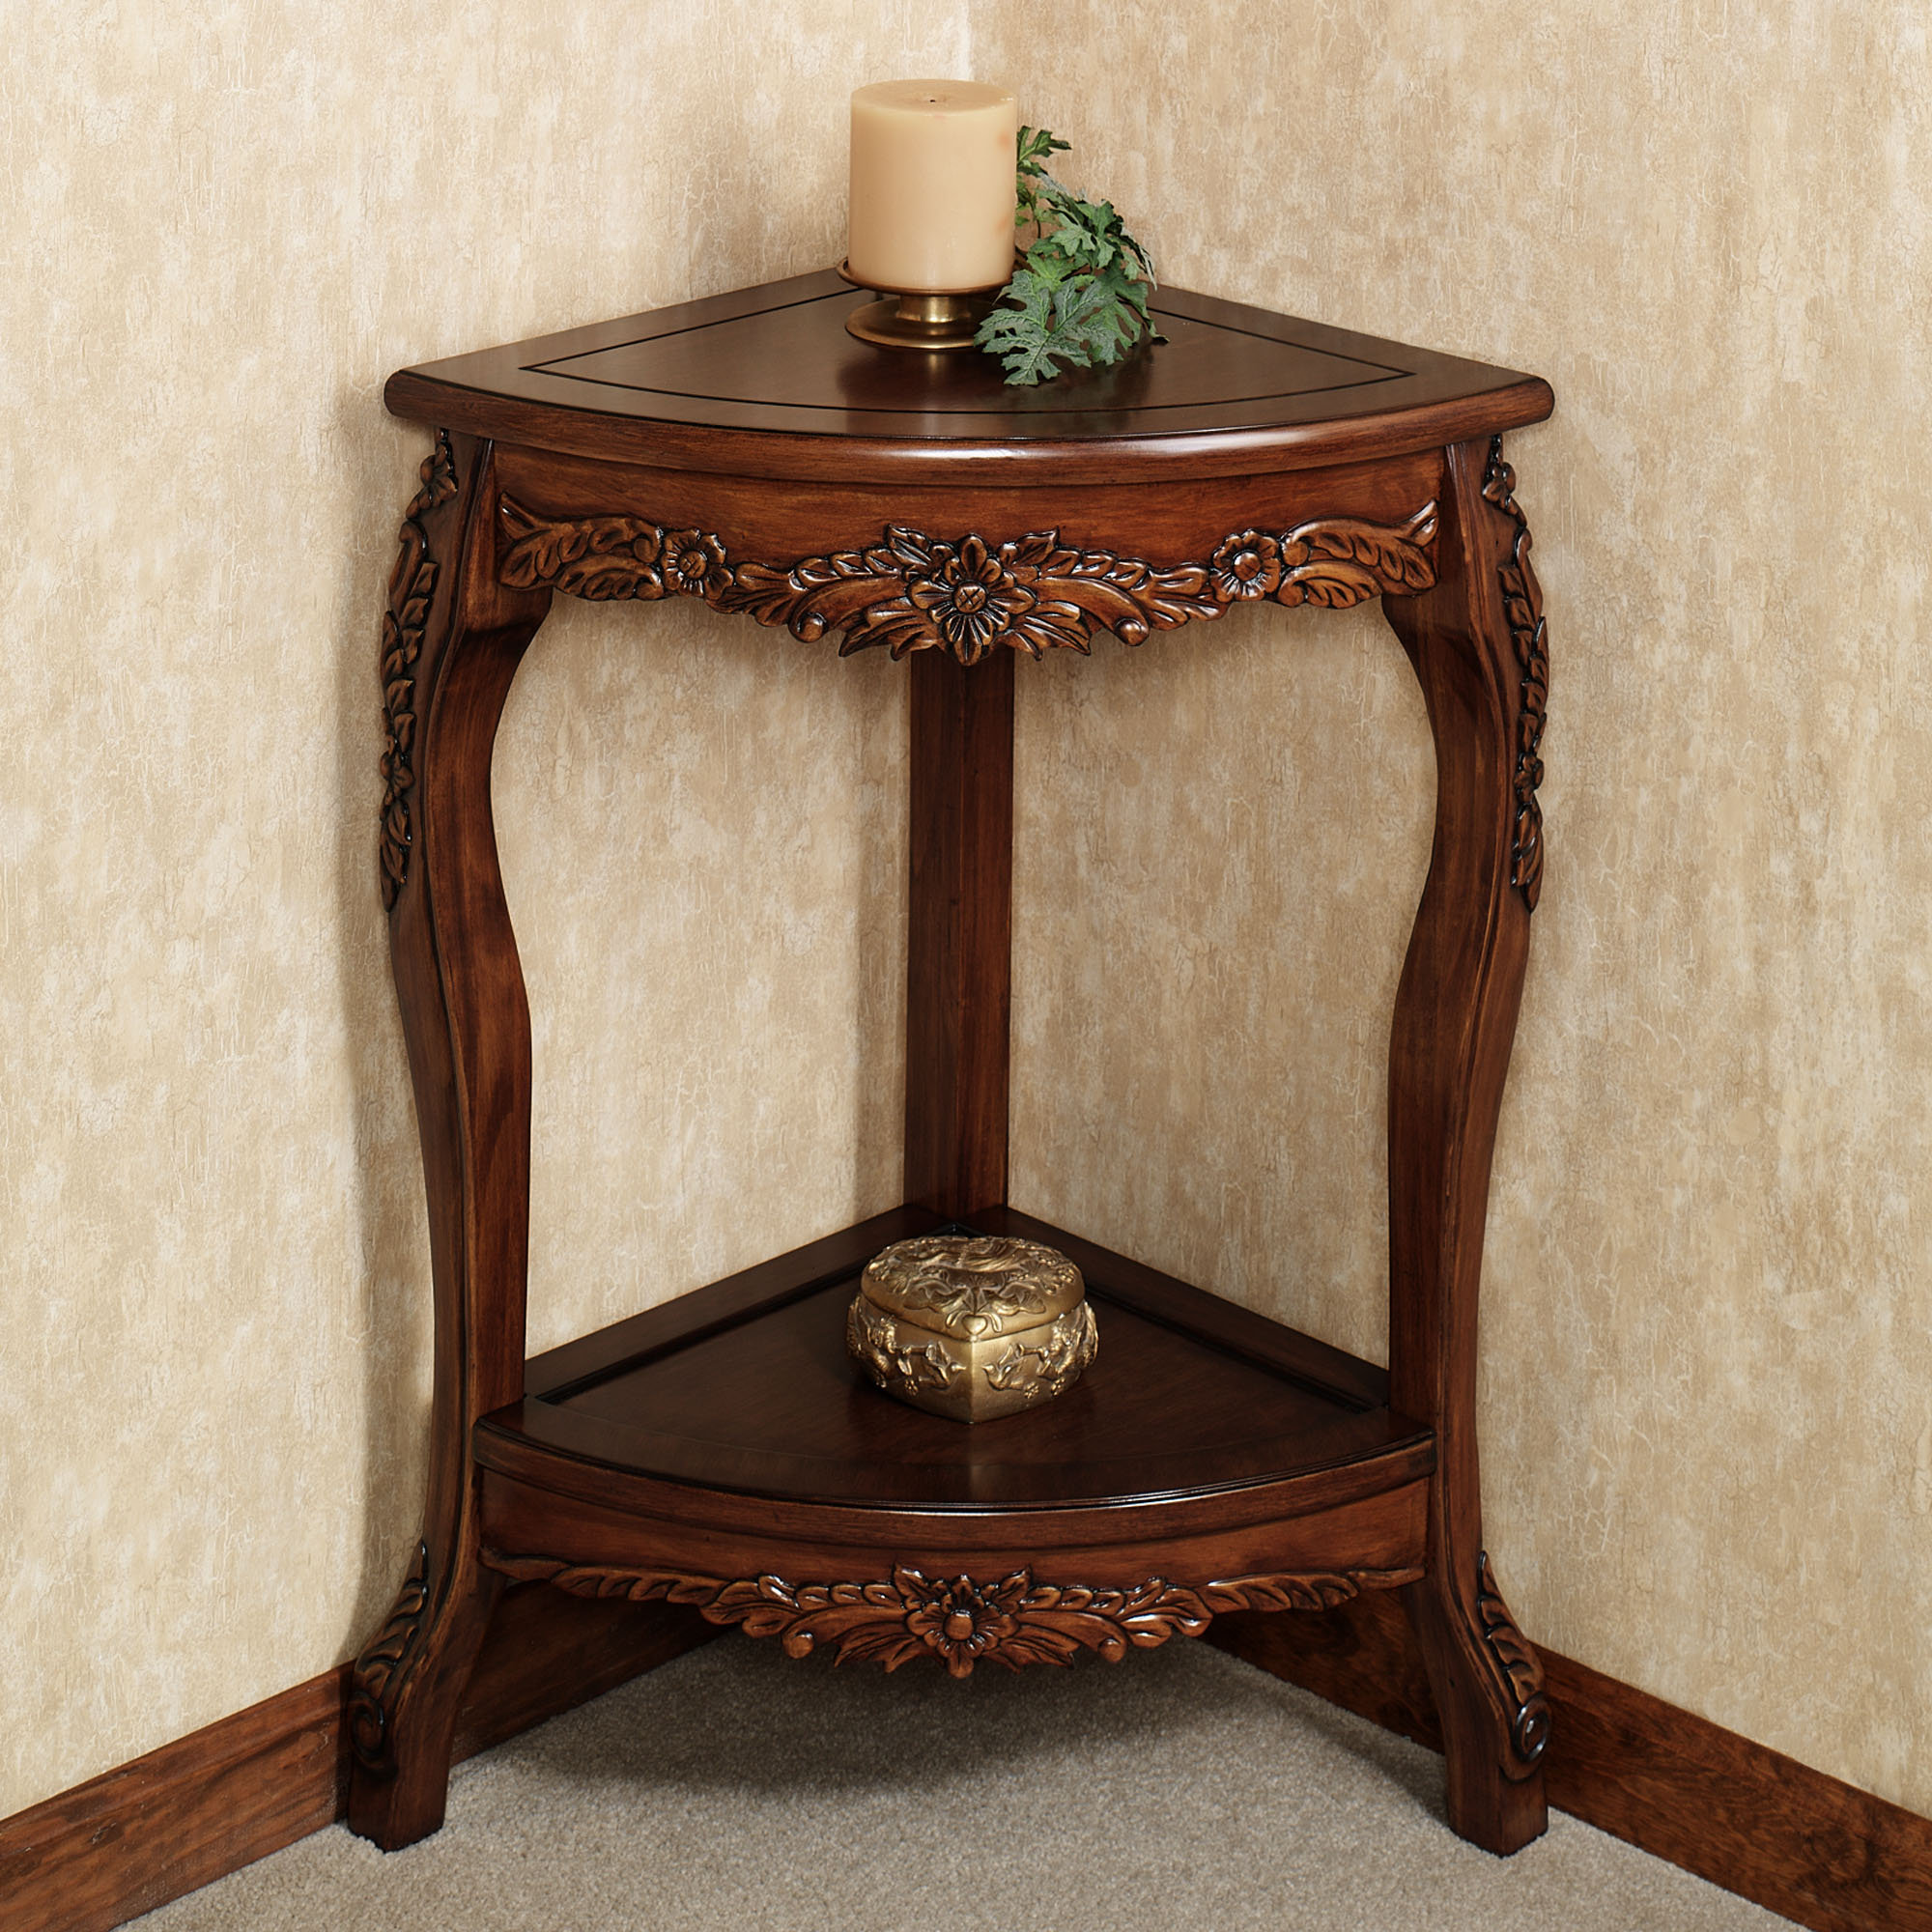 nice and clean look corner accent table the home redesign classy with storage for dining room drop leaf breakfast large shade umbrella beach furniture pub height bar tables glass